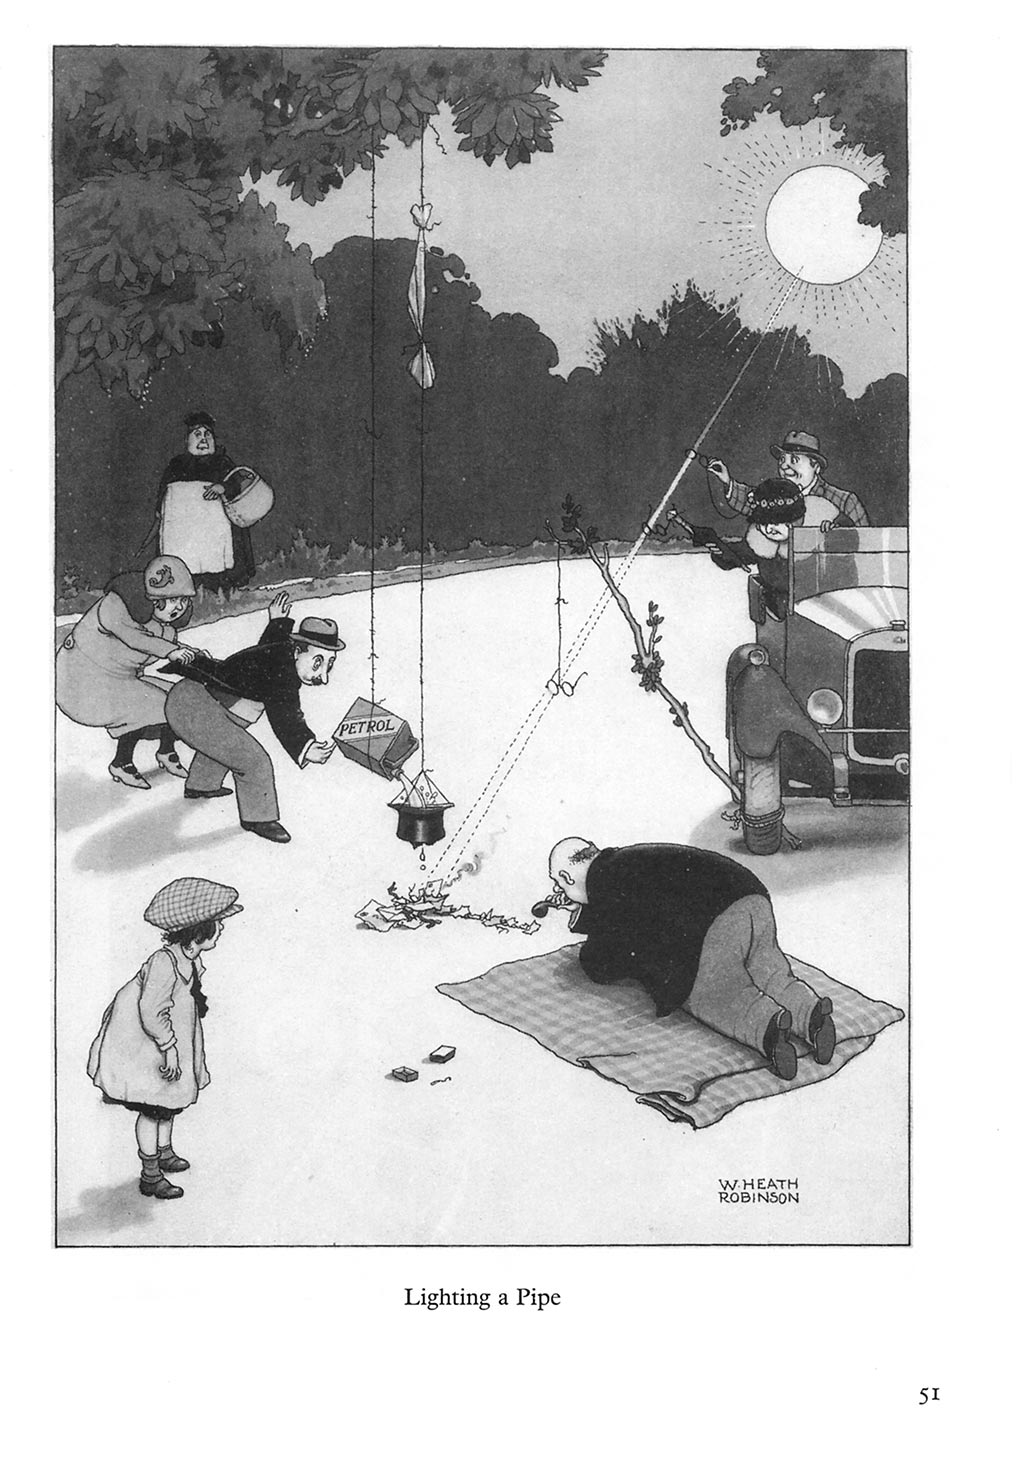 william_heath_robinson_inventions_-_page_051